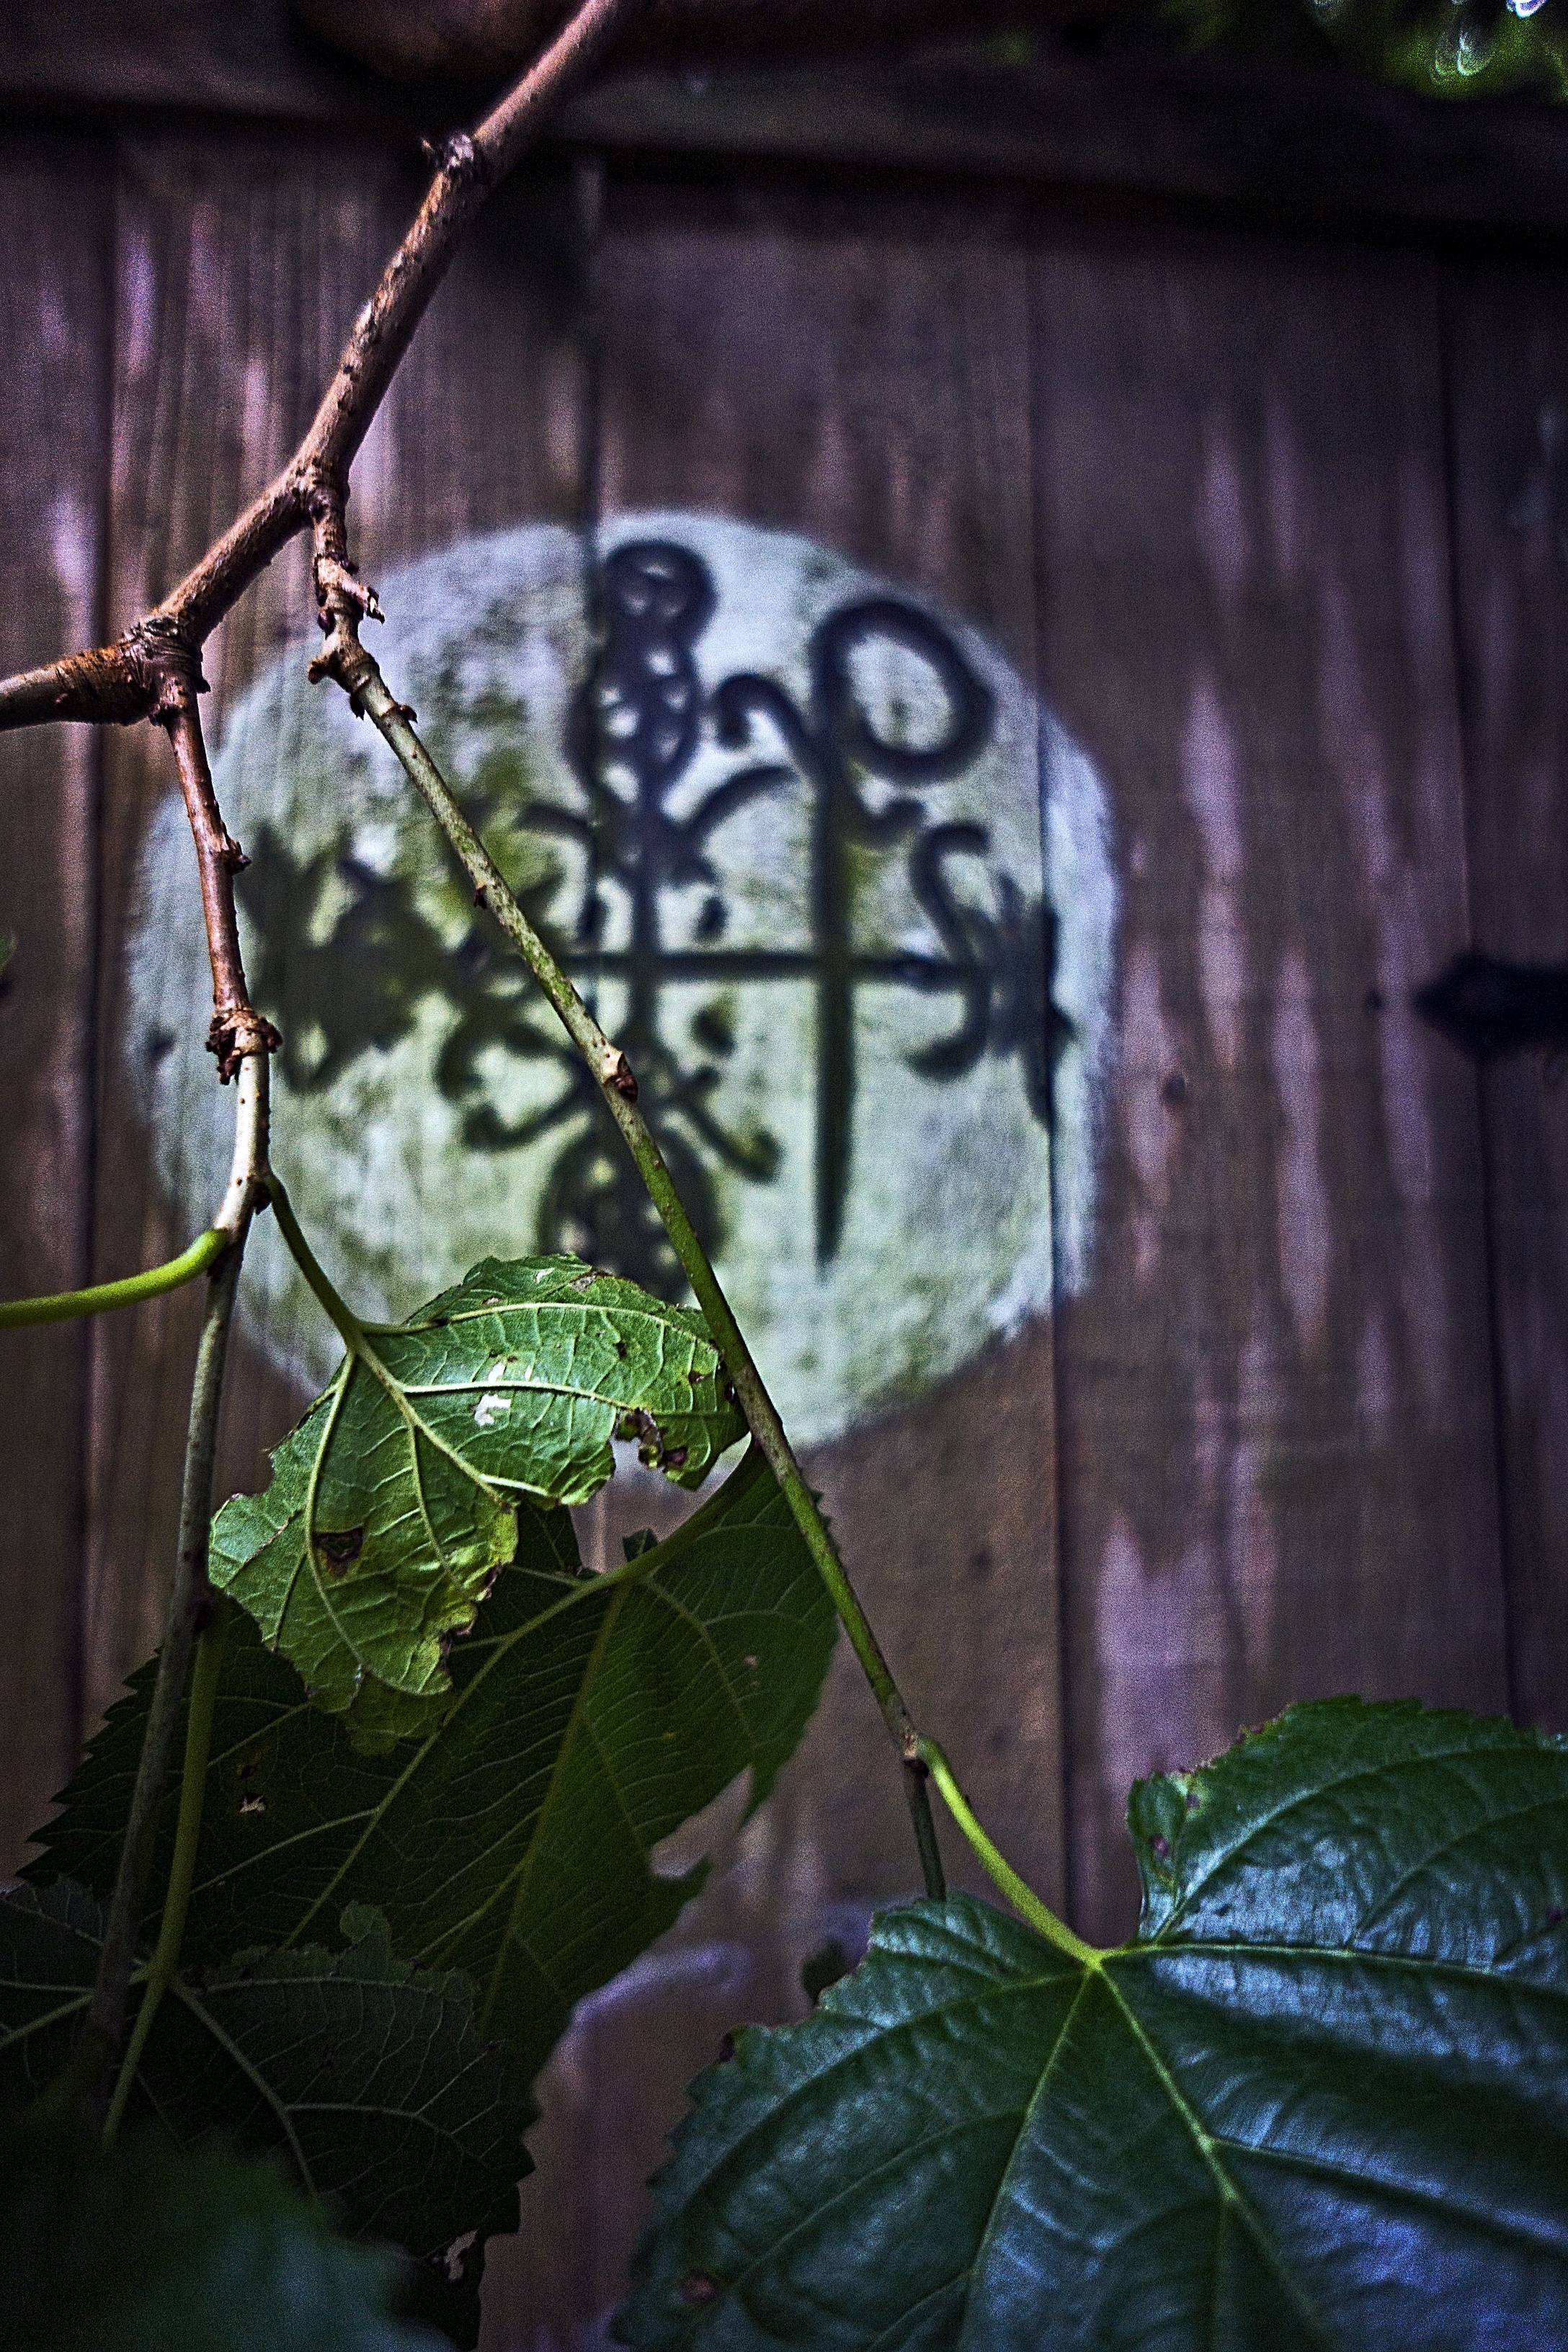 A trip to Rosalie Alley reveal a lot of signs and symbols about voodoo.